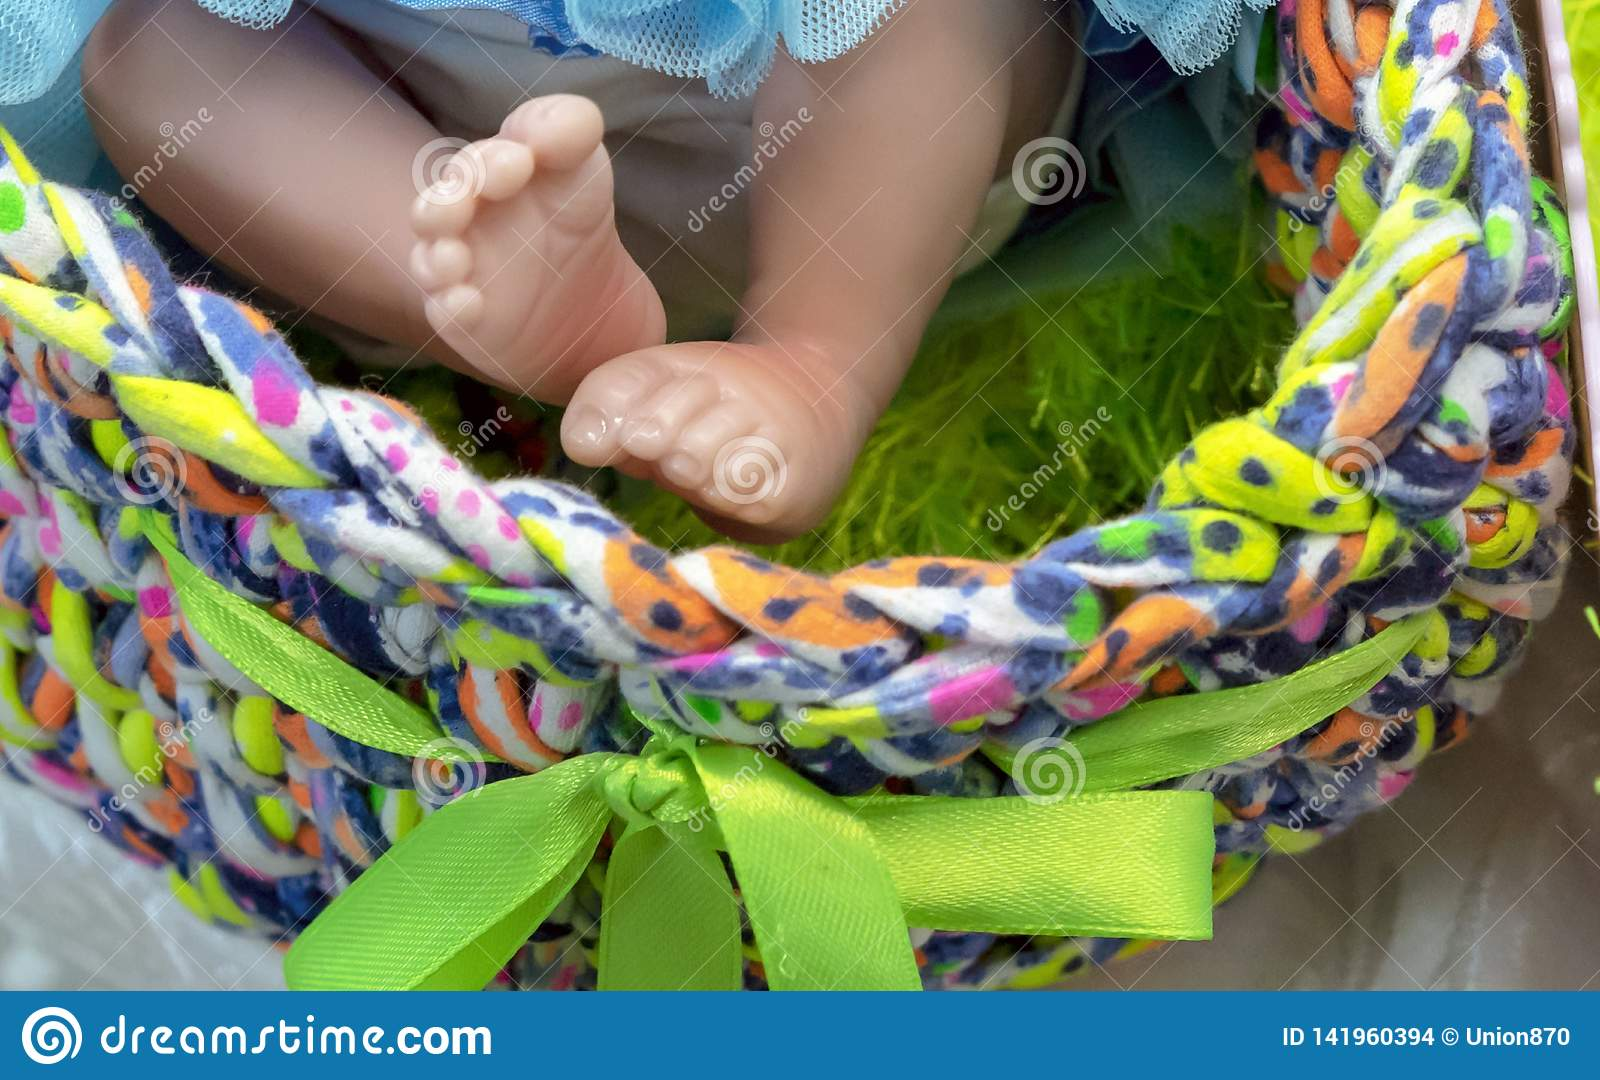 Legs of a realistic baby doll in a multi-colored basket